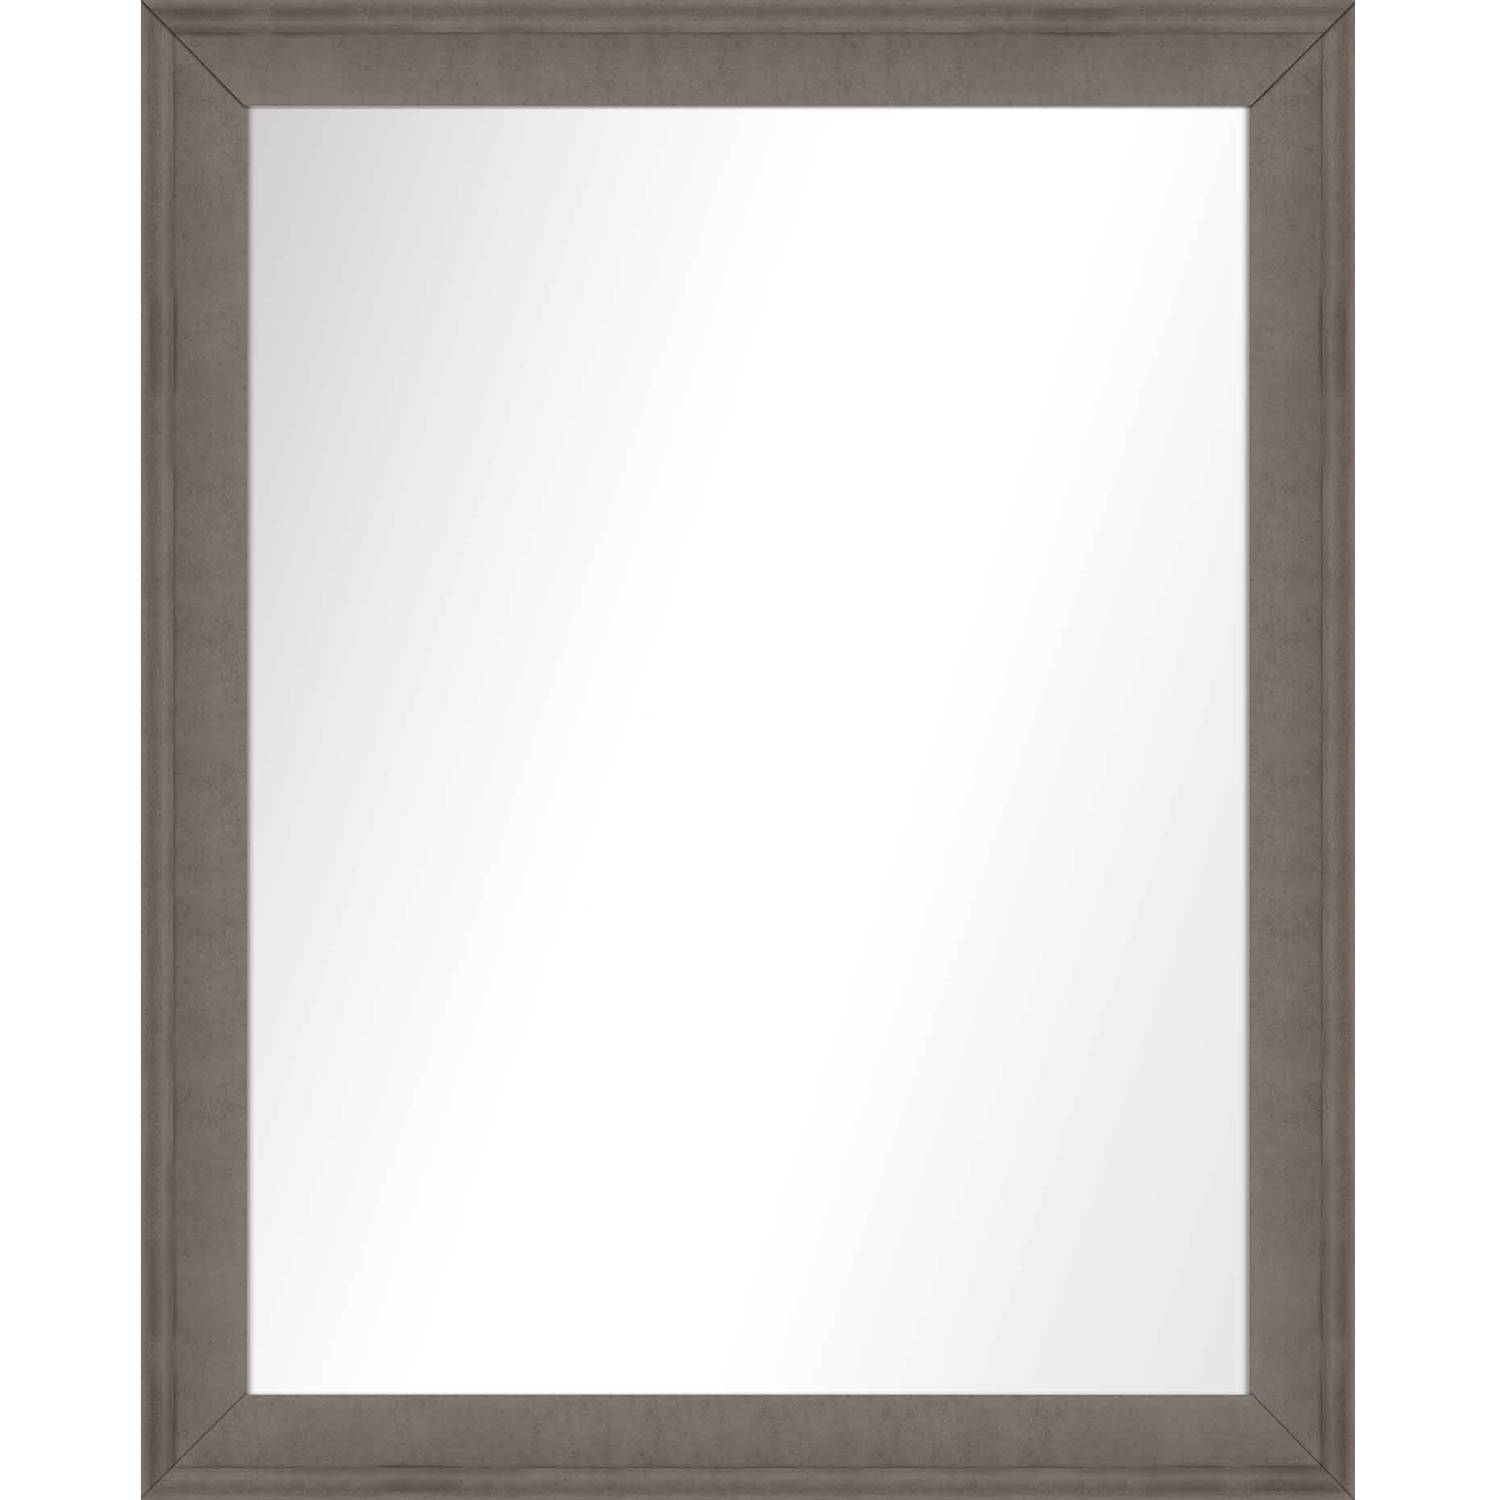 Vanity Mirror, Champagne, 25.5x31.5 by PTM Images